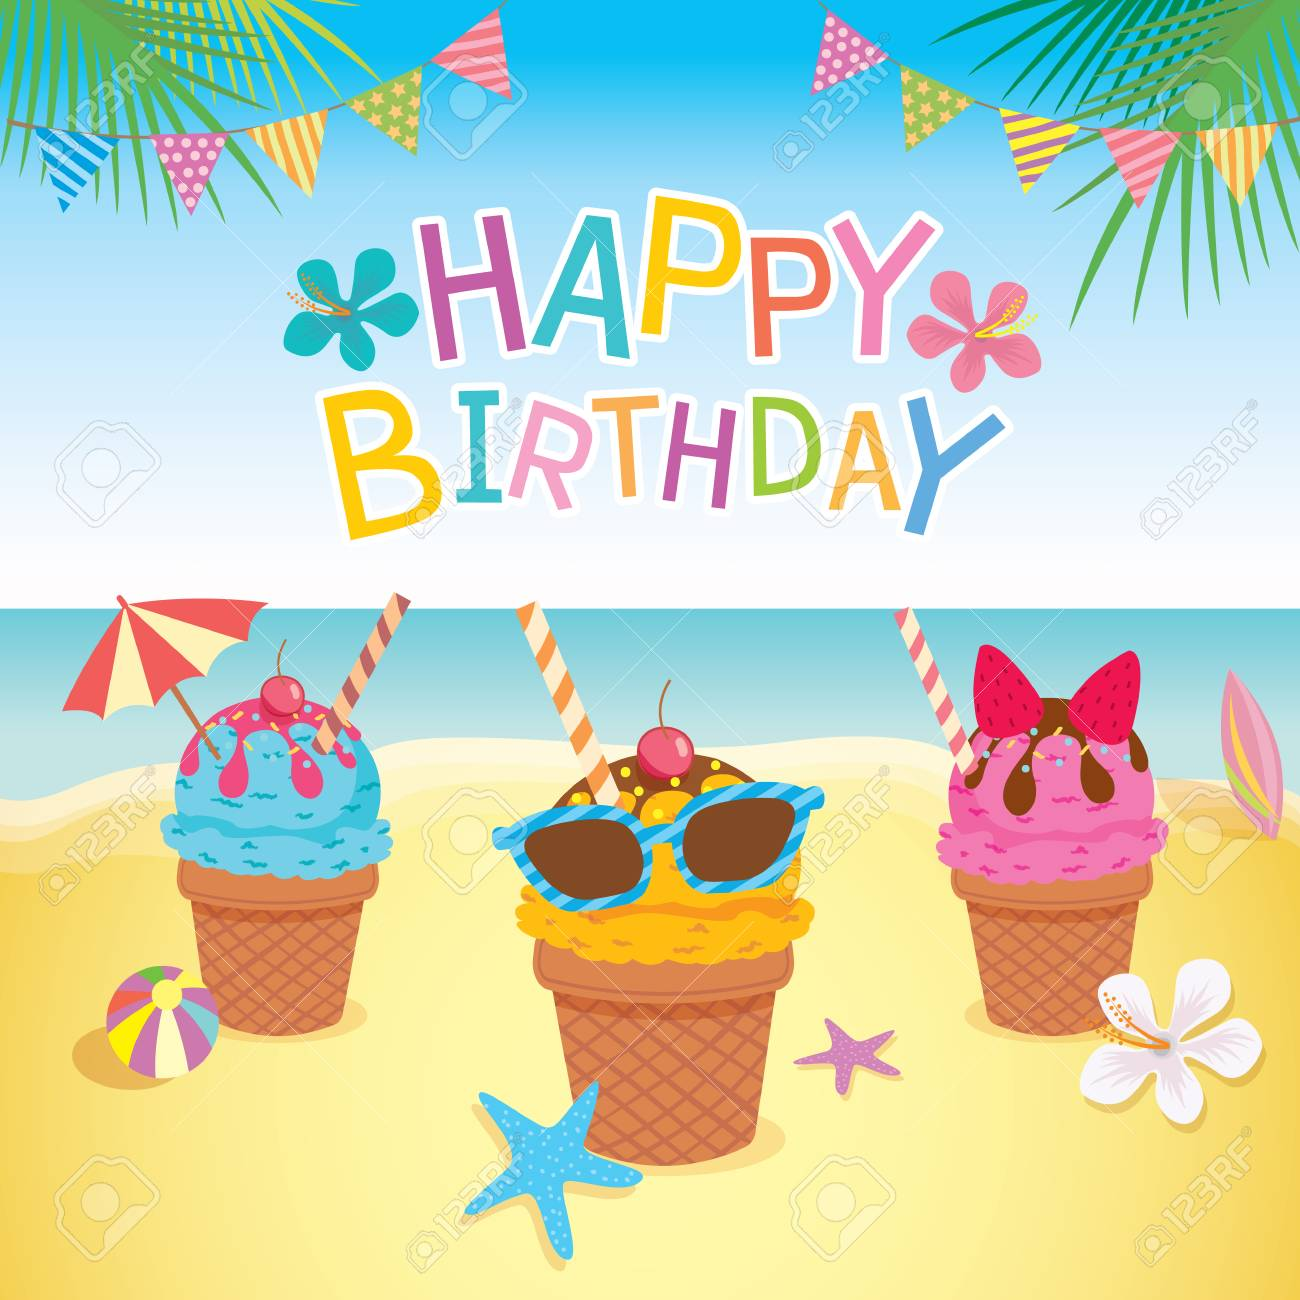 Happy Birthday Card Design With Ice Cream Decorated To Summer Season On Beach Background Stock